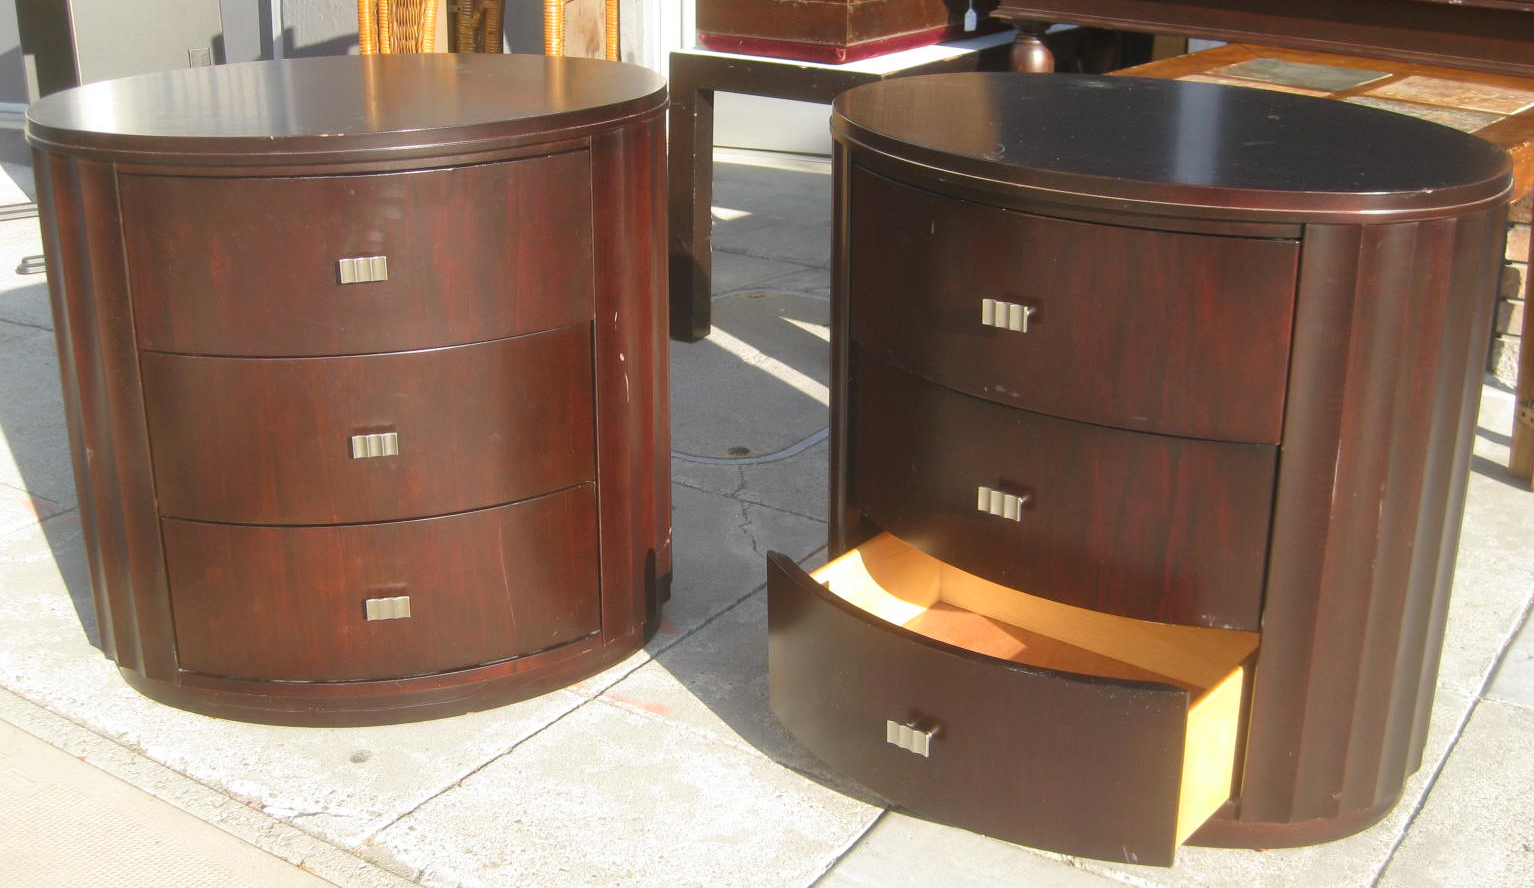 UHURU FURNITURE & COLLECTIBLES: SOLD - Pair of Night Stands with